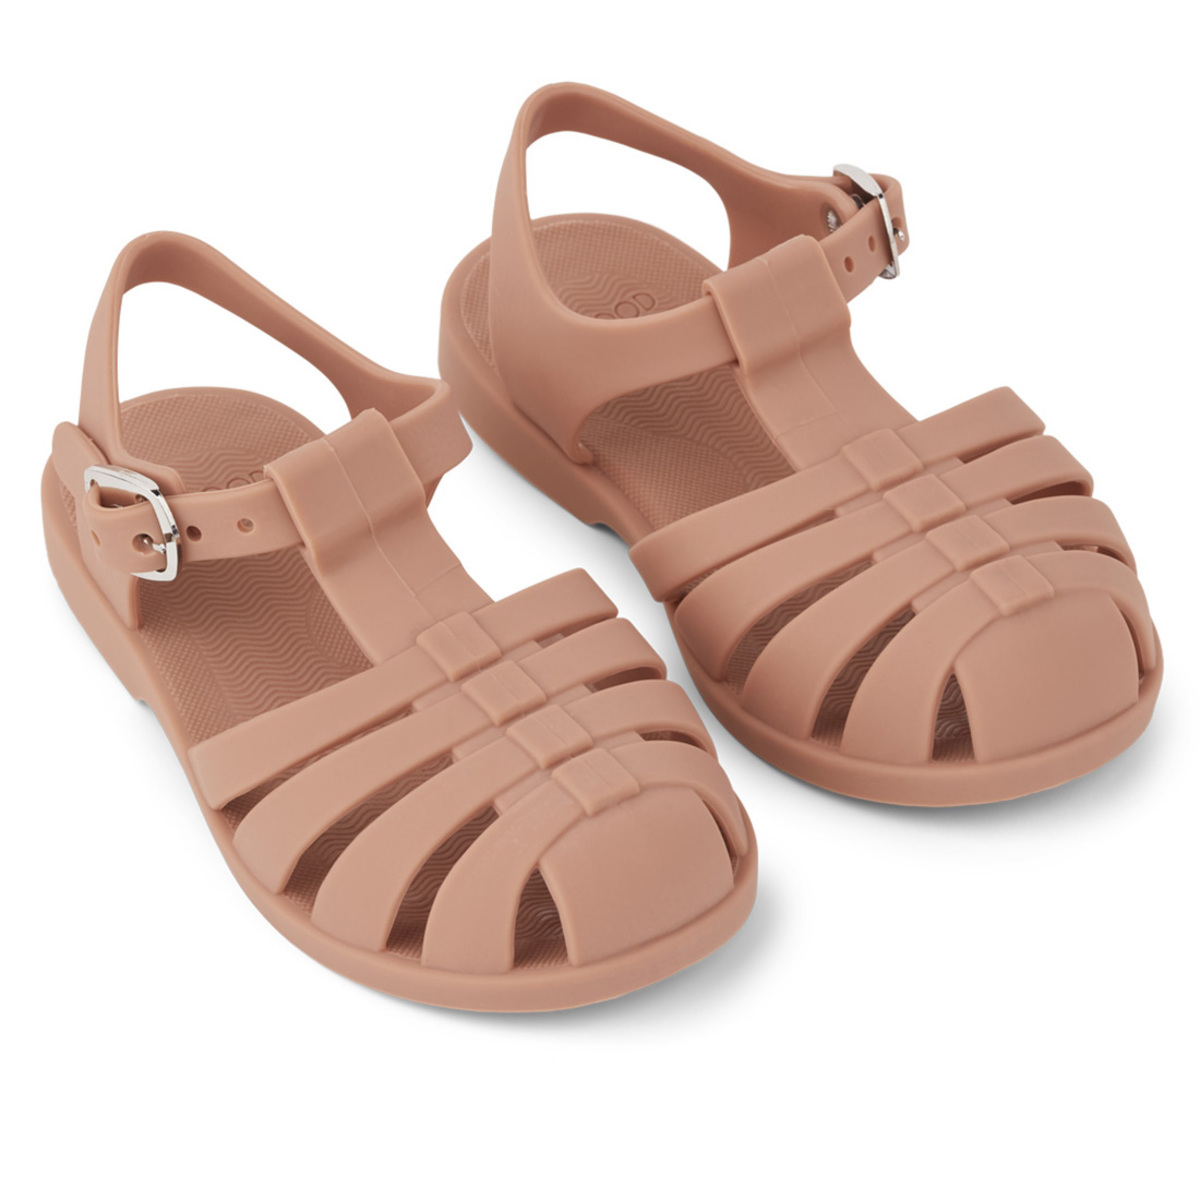 Chaussons & Chaussures Sandales Bre Tuscany Rose - 21 Sandales Bre Tuscany Rose - 21